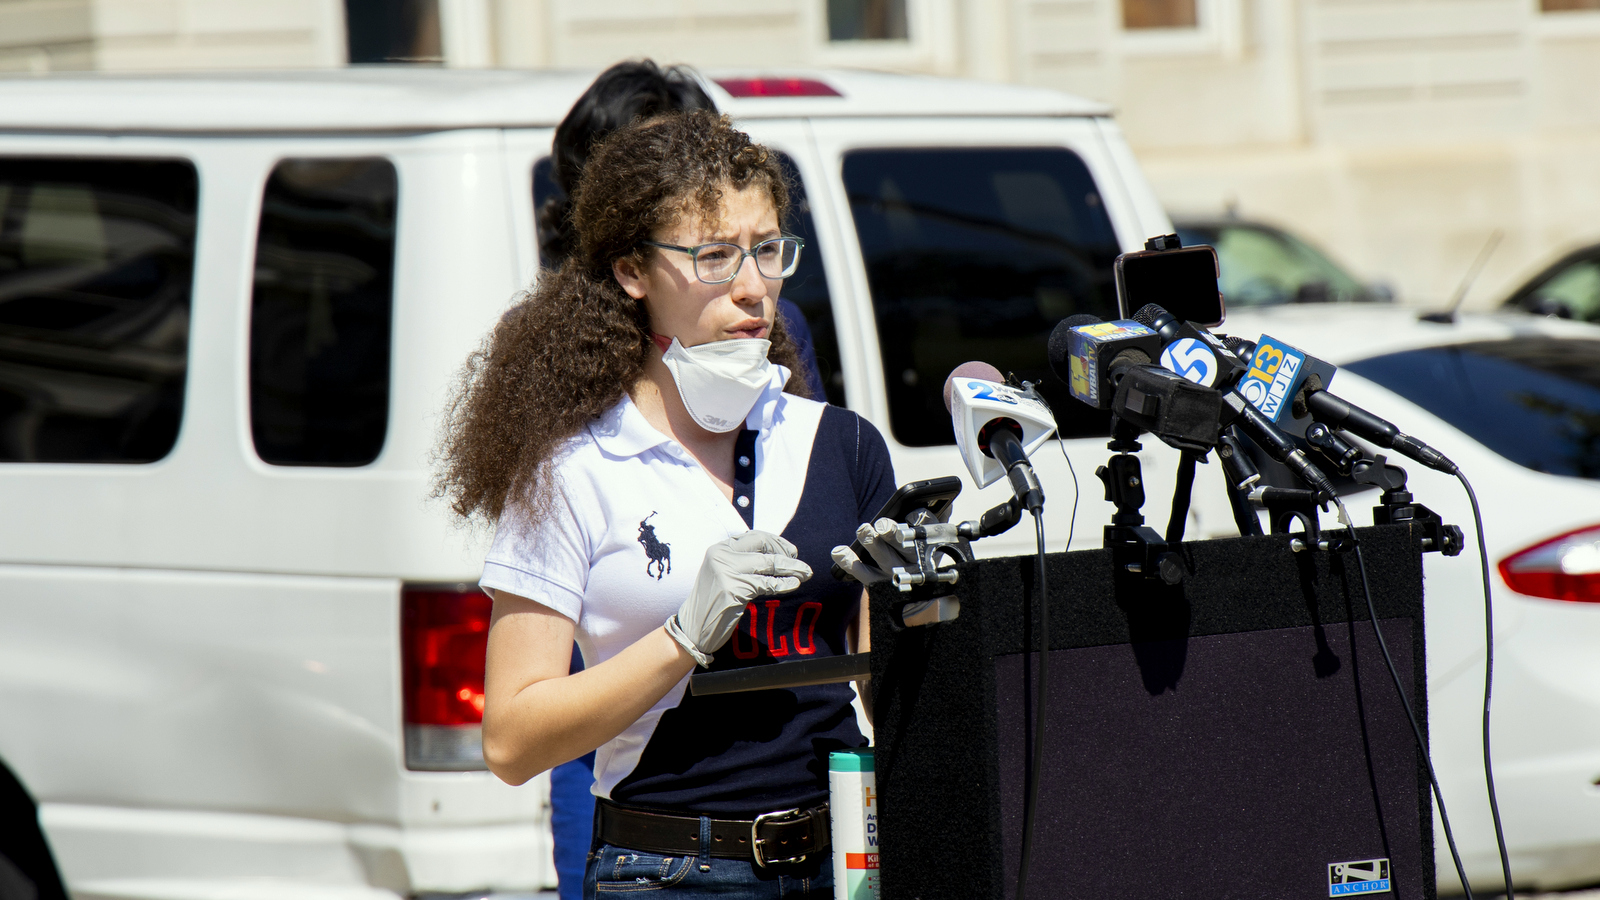 Franca Muller Paz speaks at the rally in front of City Hall today. (Nicholas Mackall)